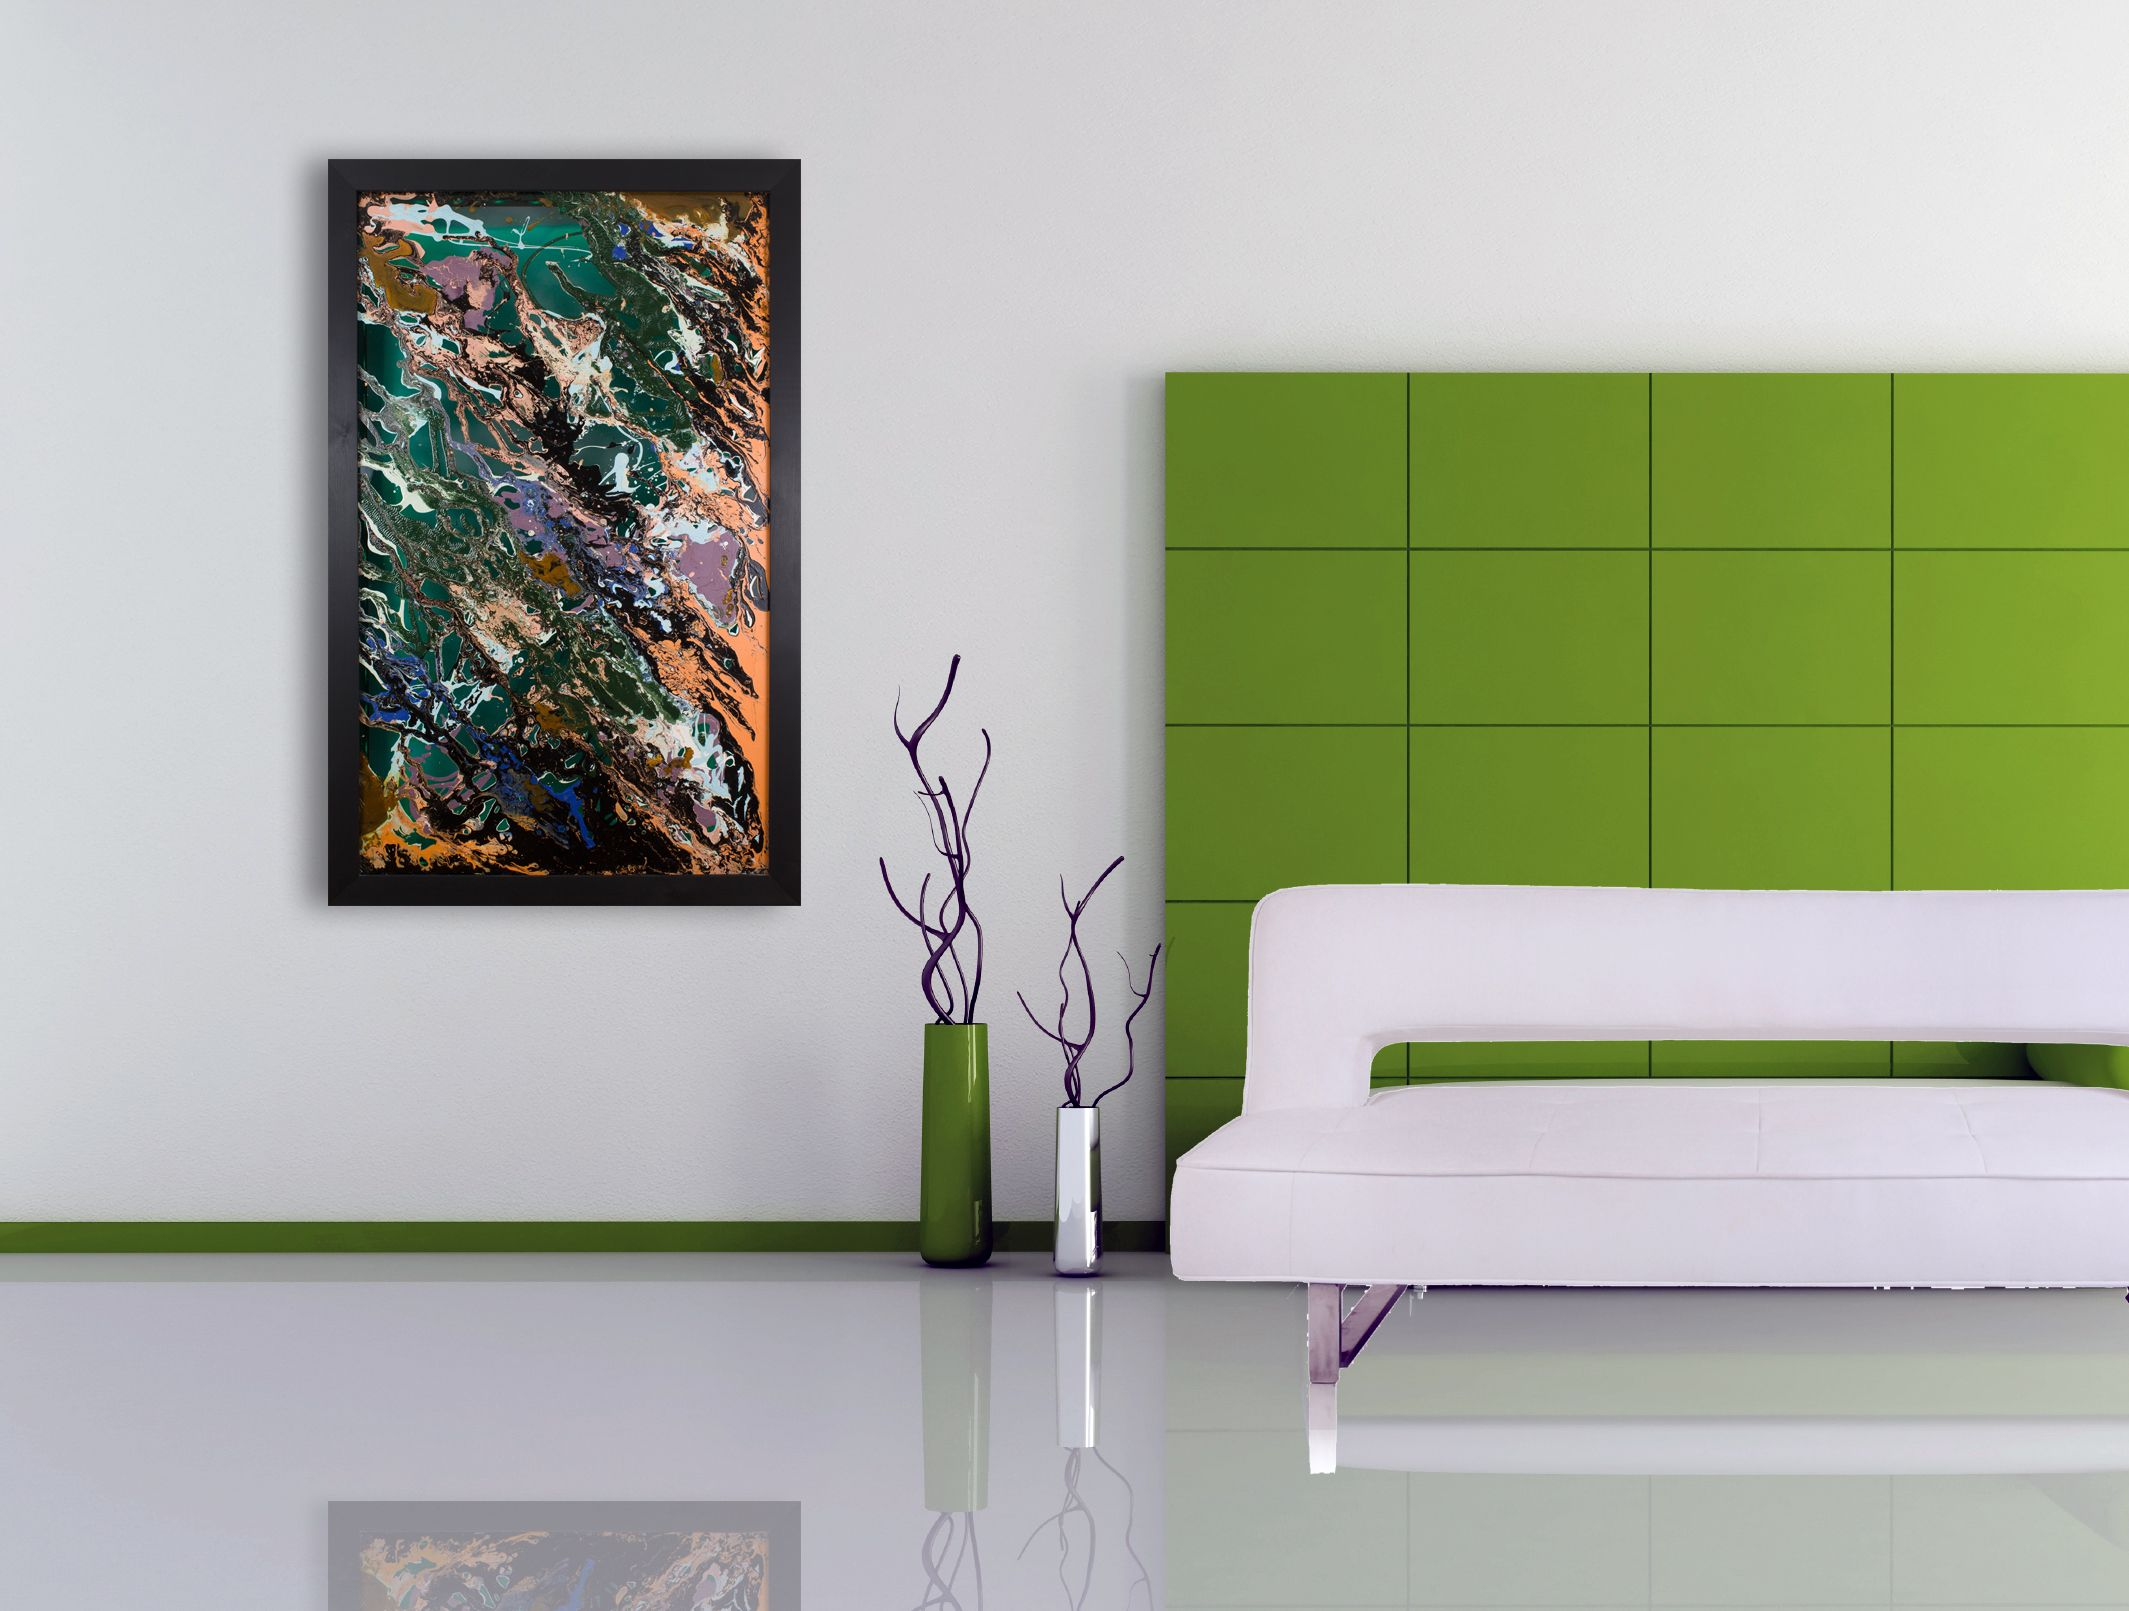 Large abstract art extra large art wall art modern glass artmodern abstract painting wall art modern art original abstract glass art pinterest